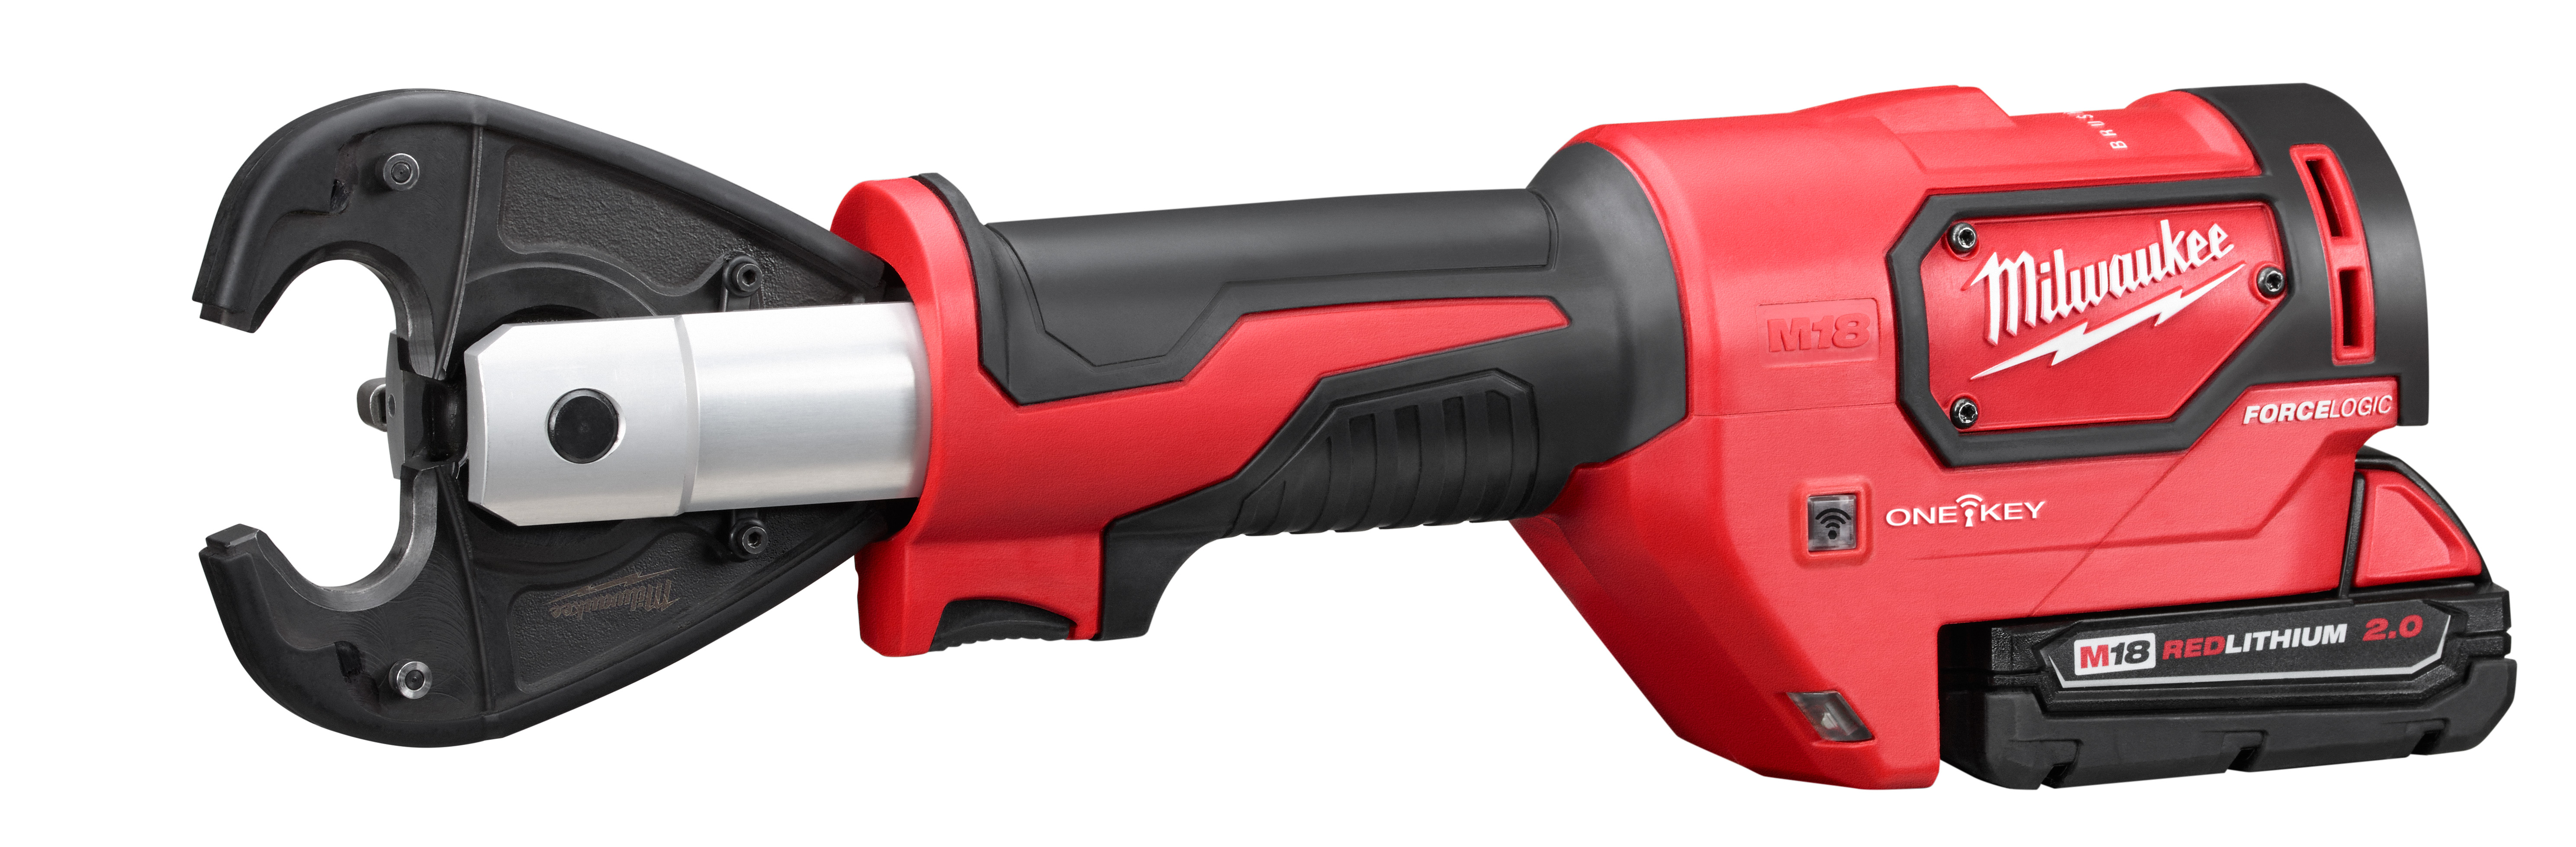 Milwaukee® M18™ FORCE LOGIC™ 2678-22 Utility Crimping Kit With D3 Grooves Snub Nose, 6 ton Crimping, 18 VDC, Lithium-Ion Battery